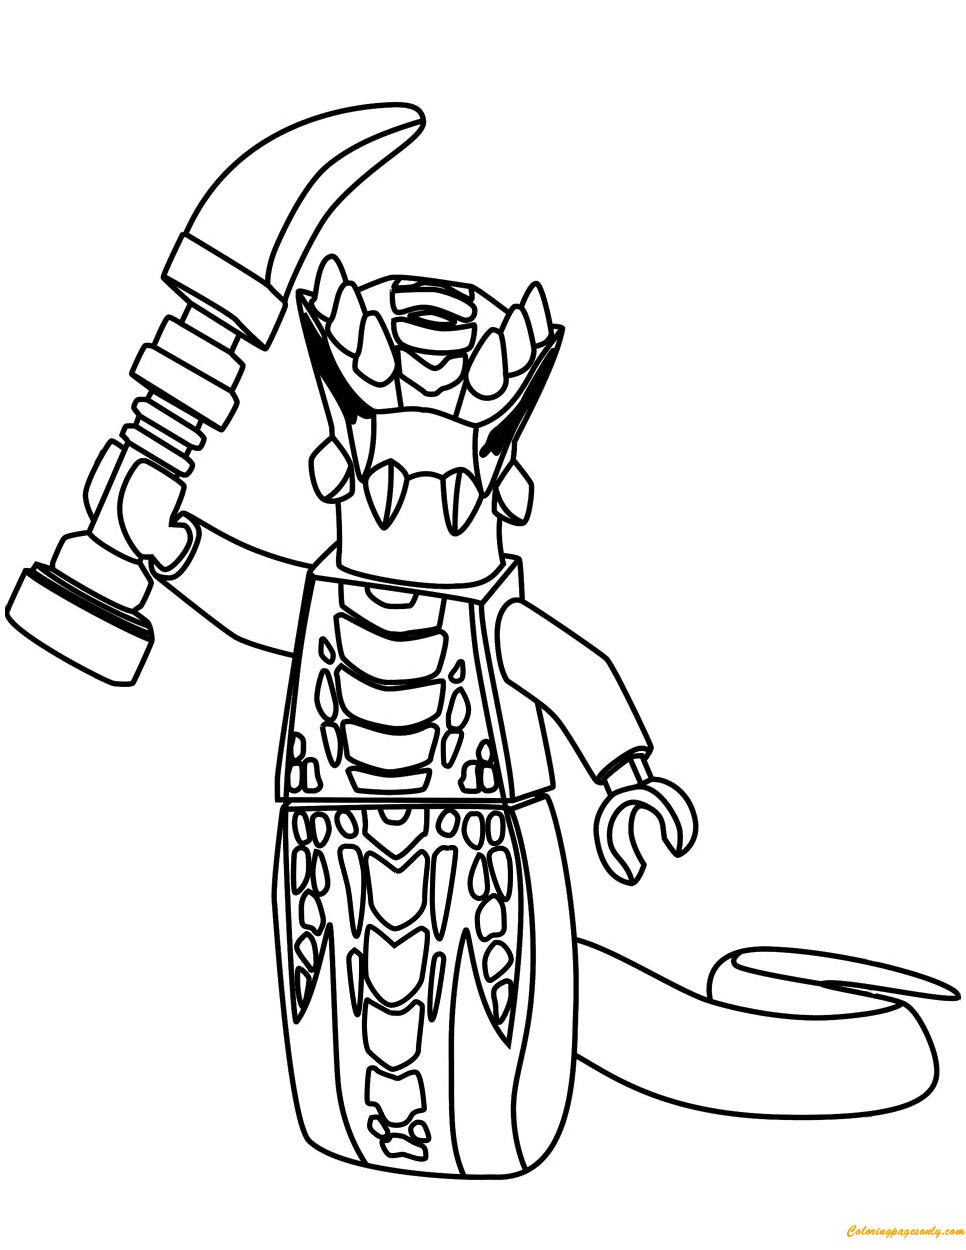 acidicus from lego ninjago coloring page  free coloring